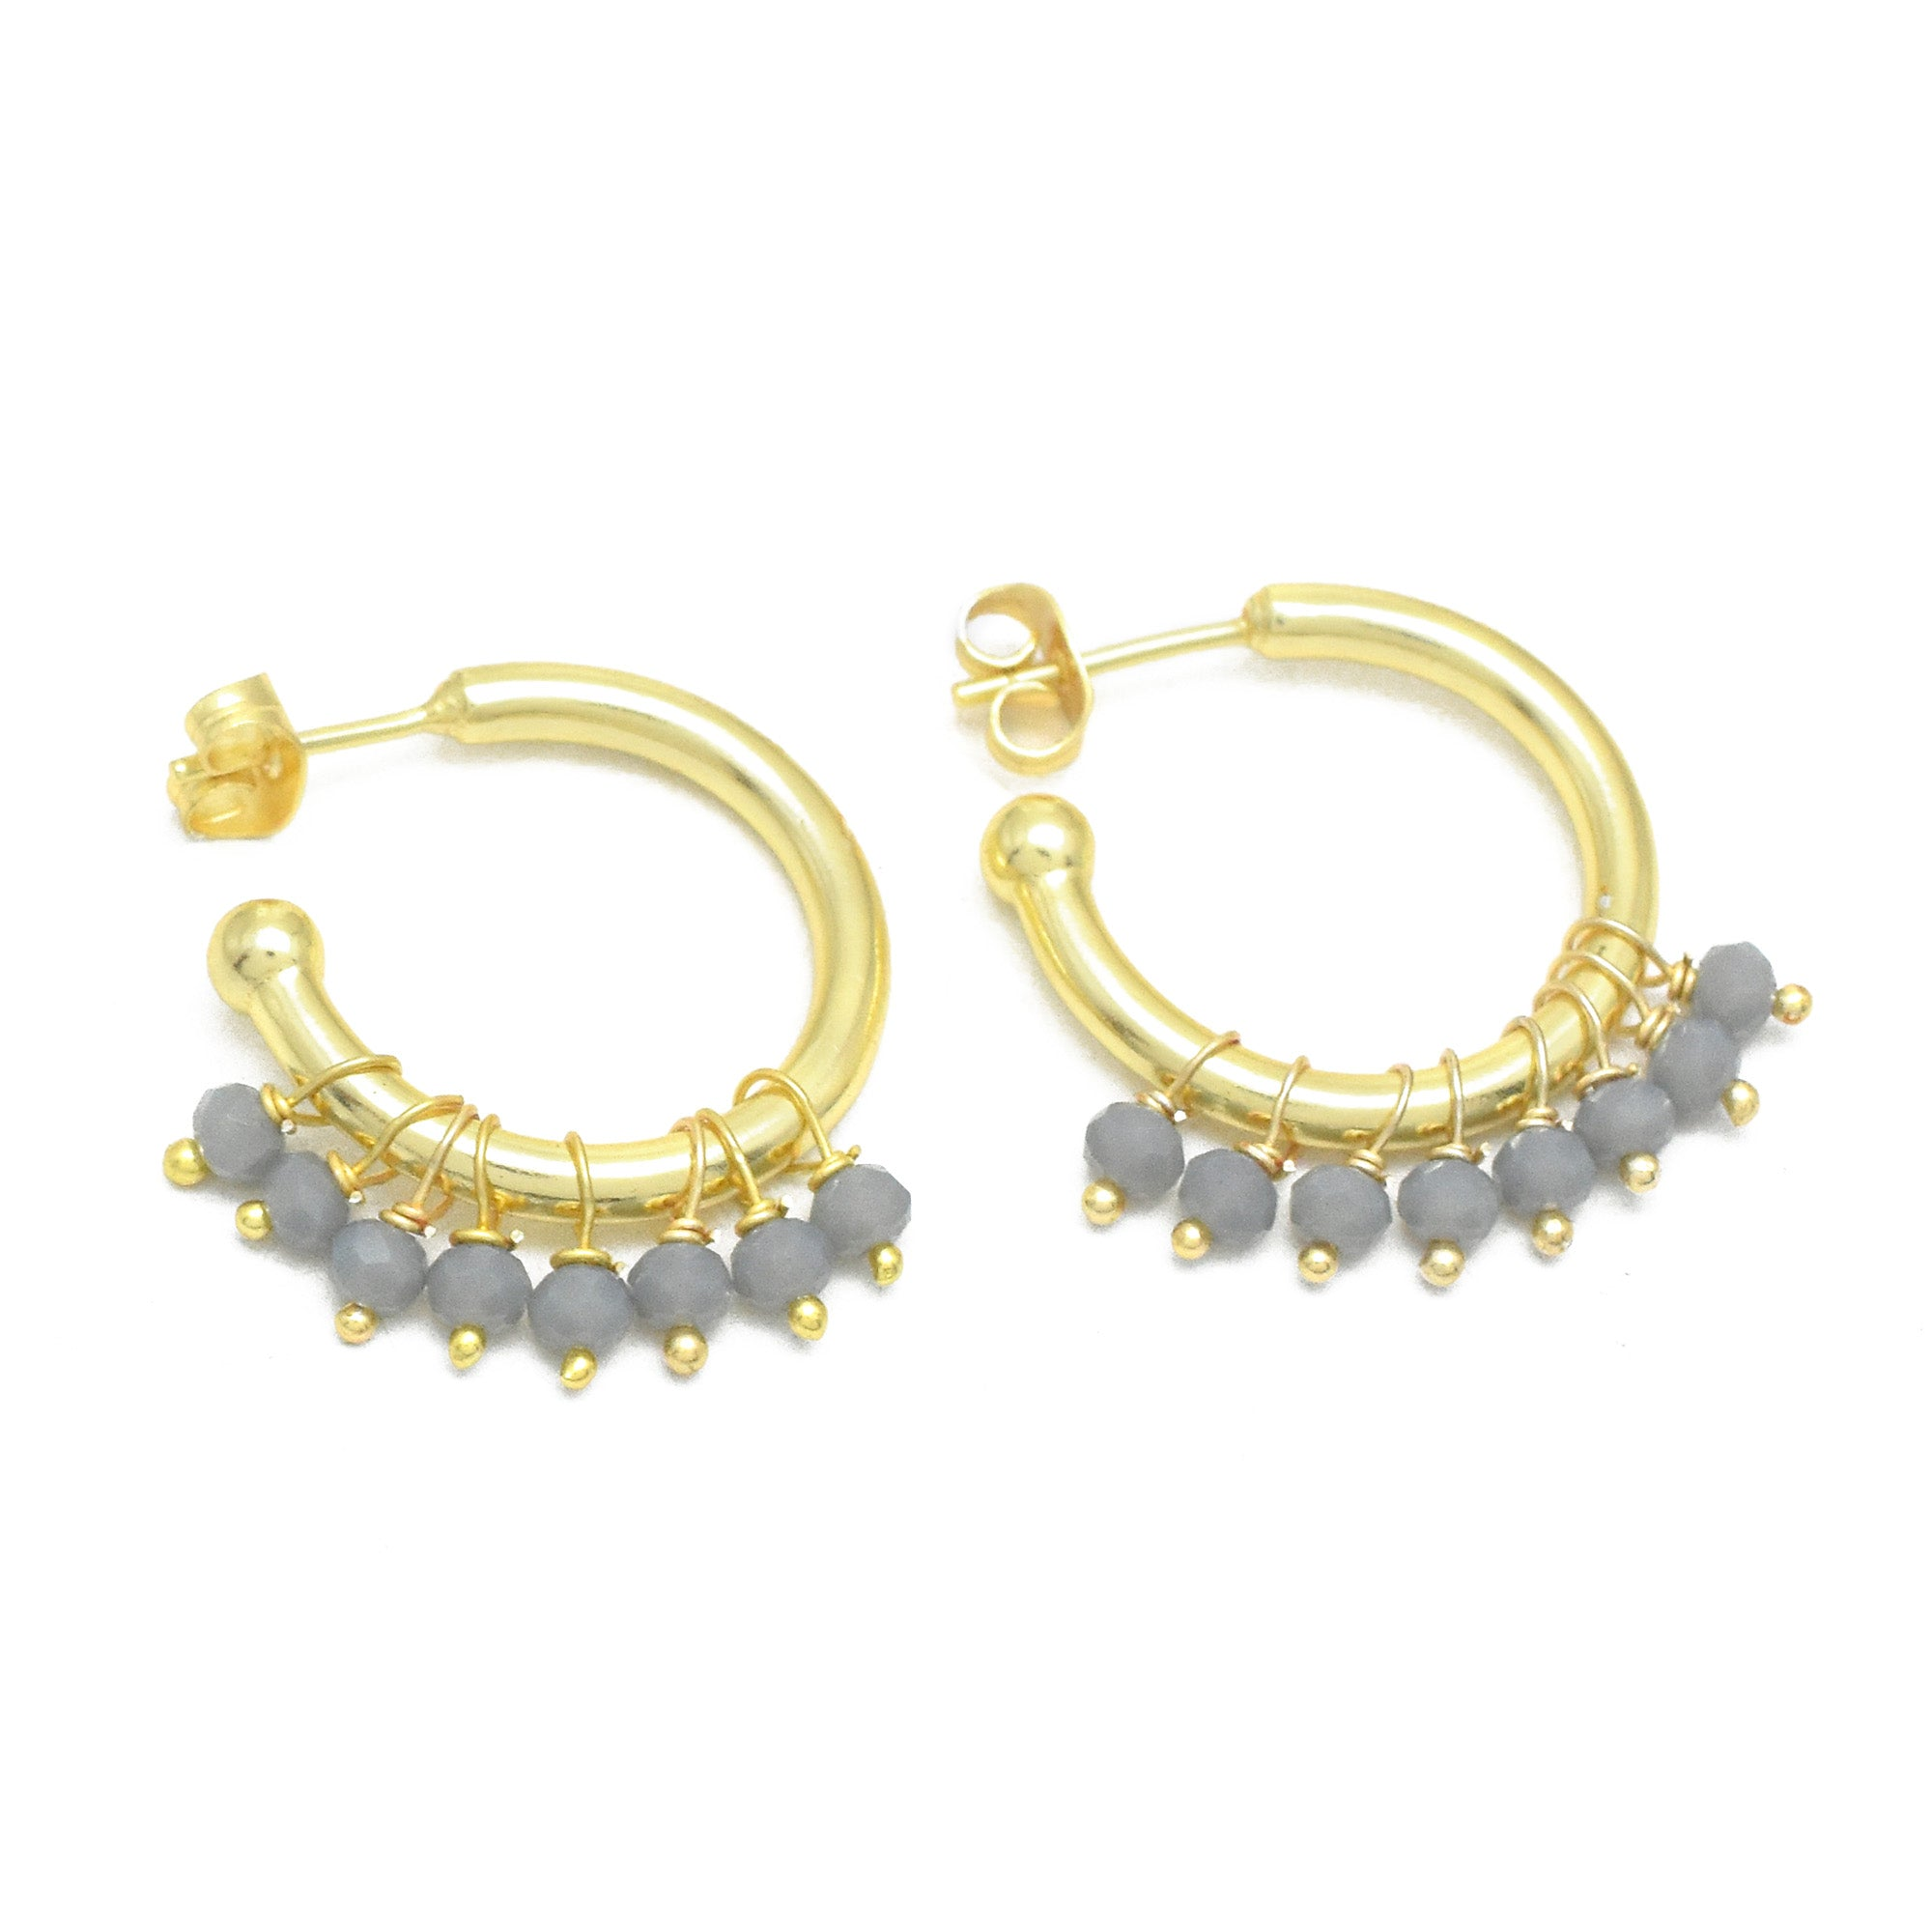 Grey Chalcedony Fringe Door Knocker C-Hoop Earrings Gold Plated